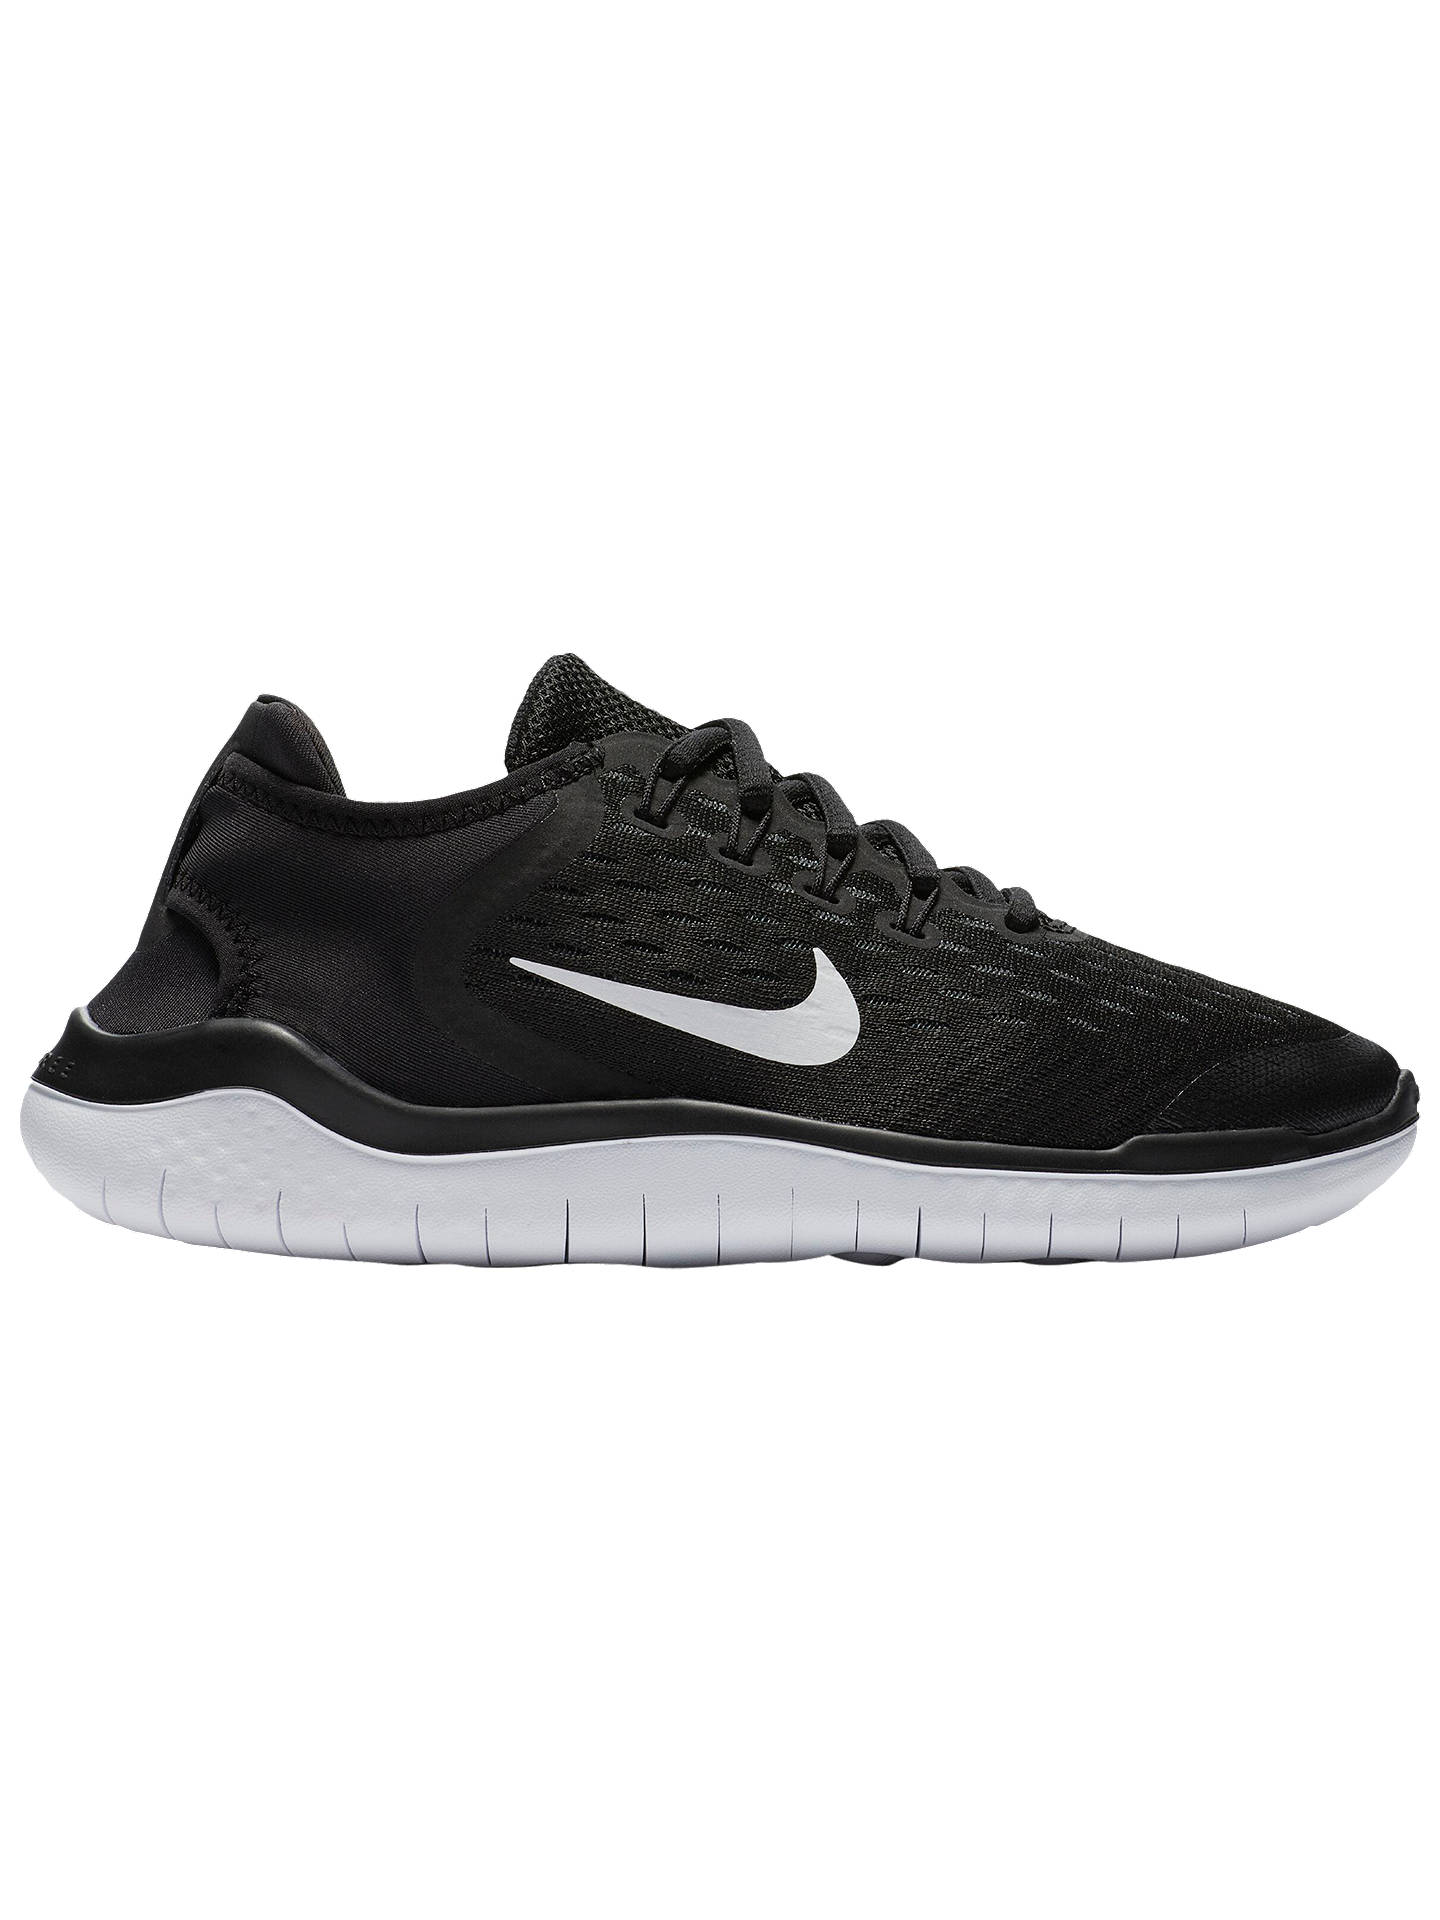 quality design c3e5f 238cd Nike Children's Free RN 2018 Trainers at John Lewis & Partners